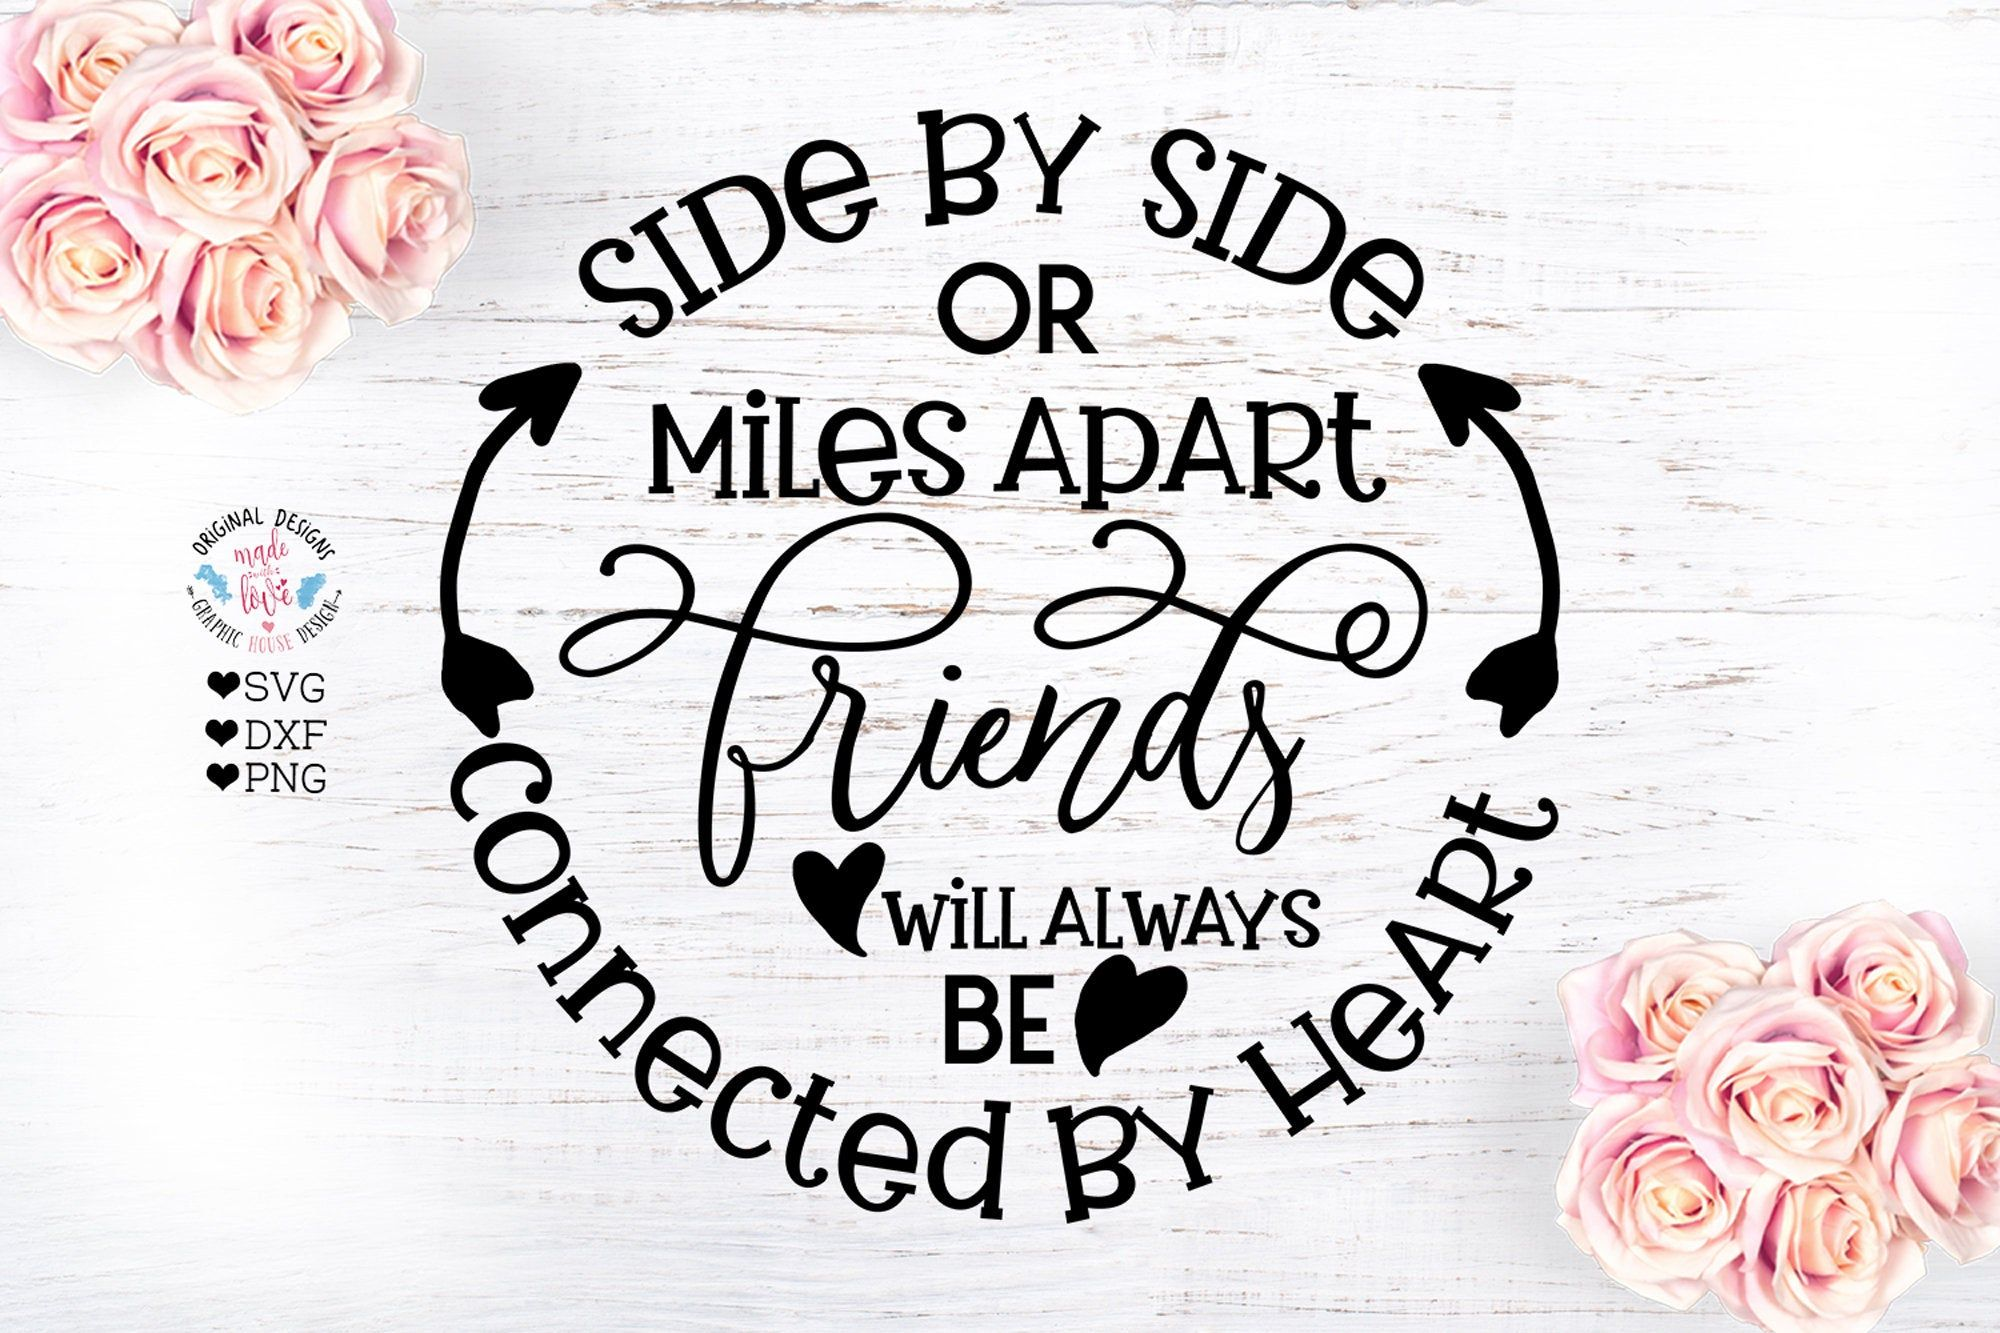 Friends Svg Side By Side Or Miles Apart Friends Will